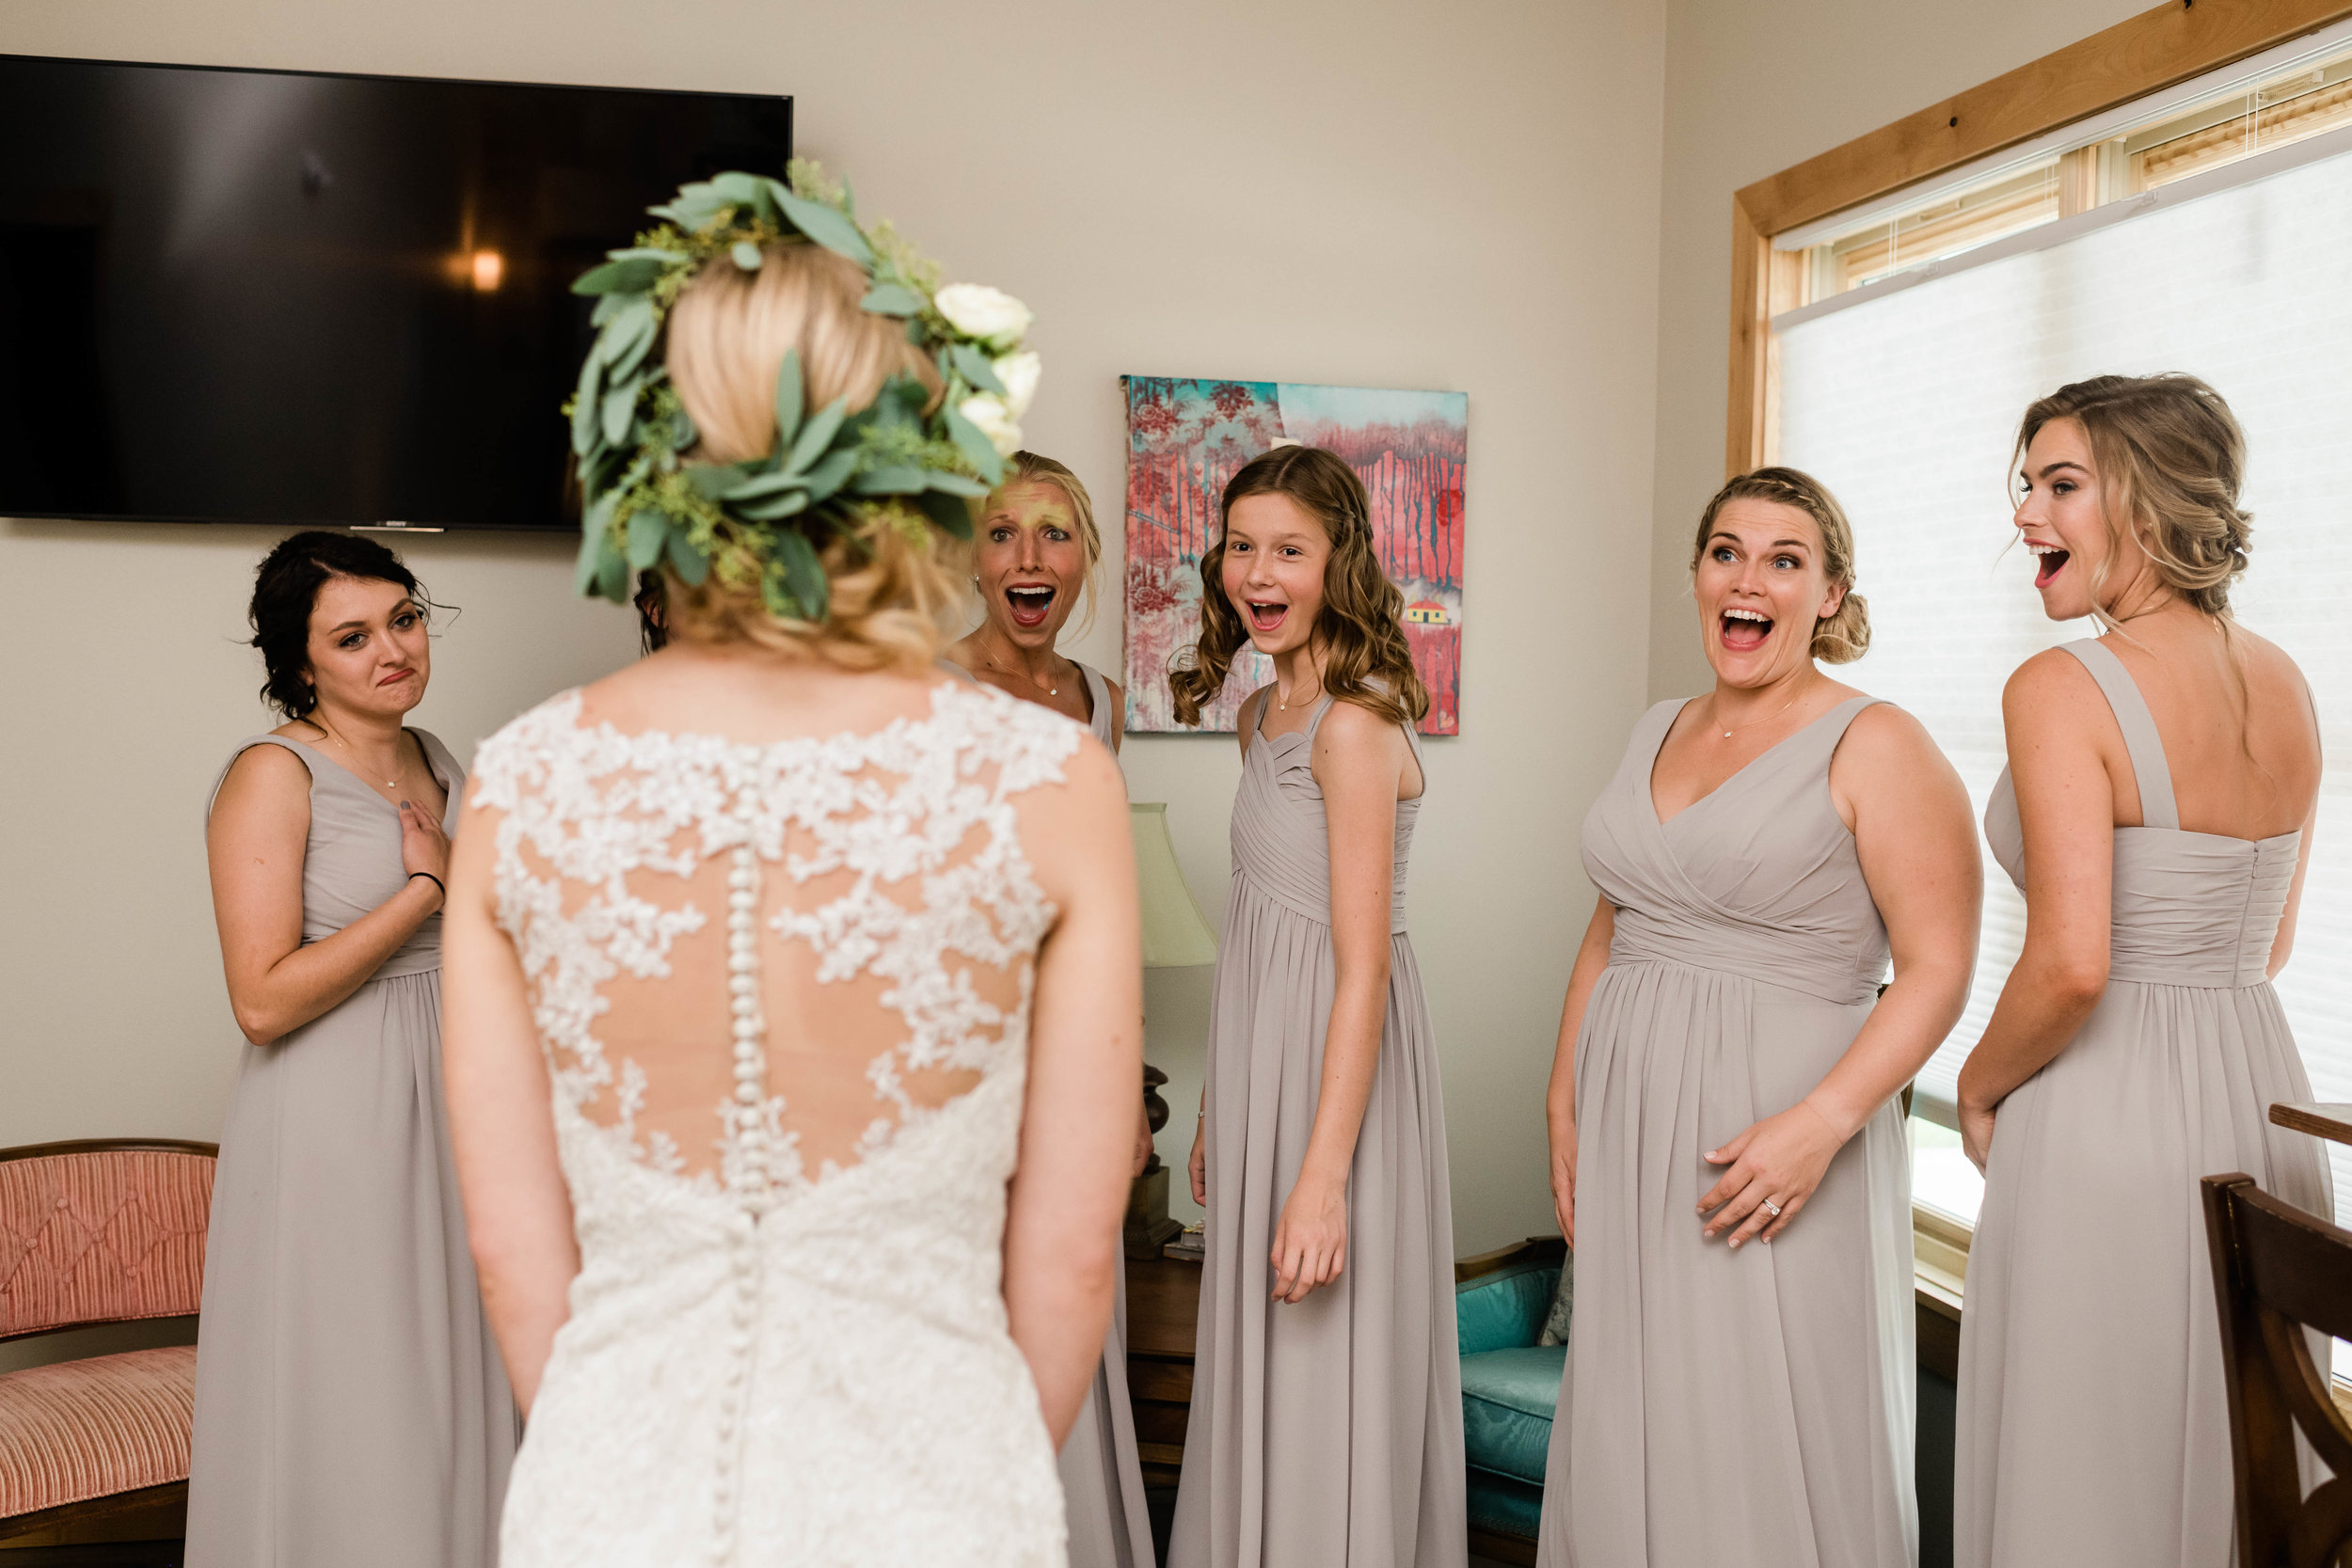 Bridesmaids react to their first look of bride